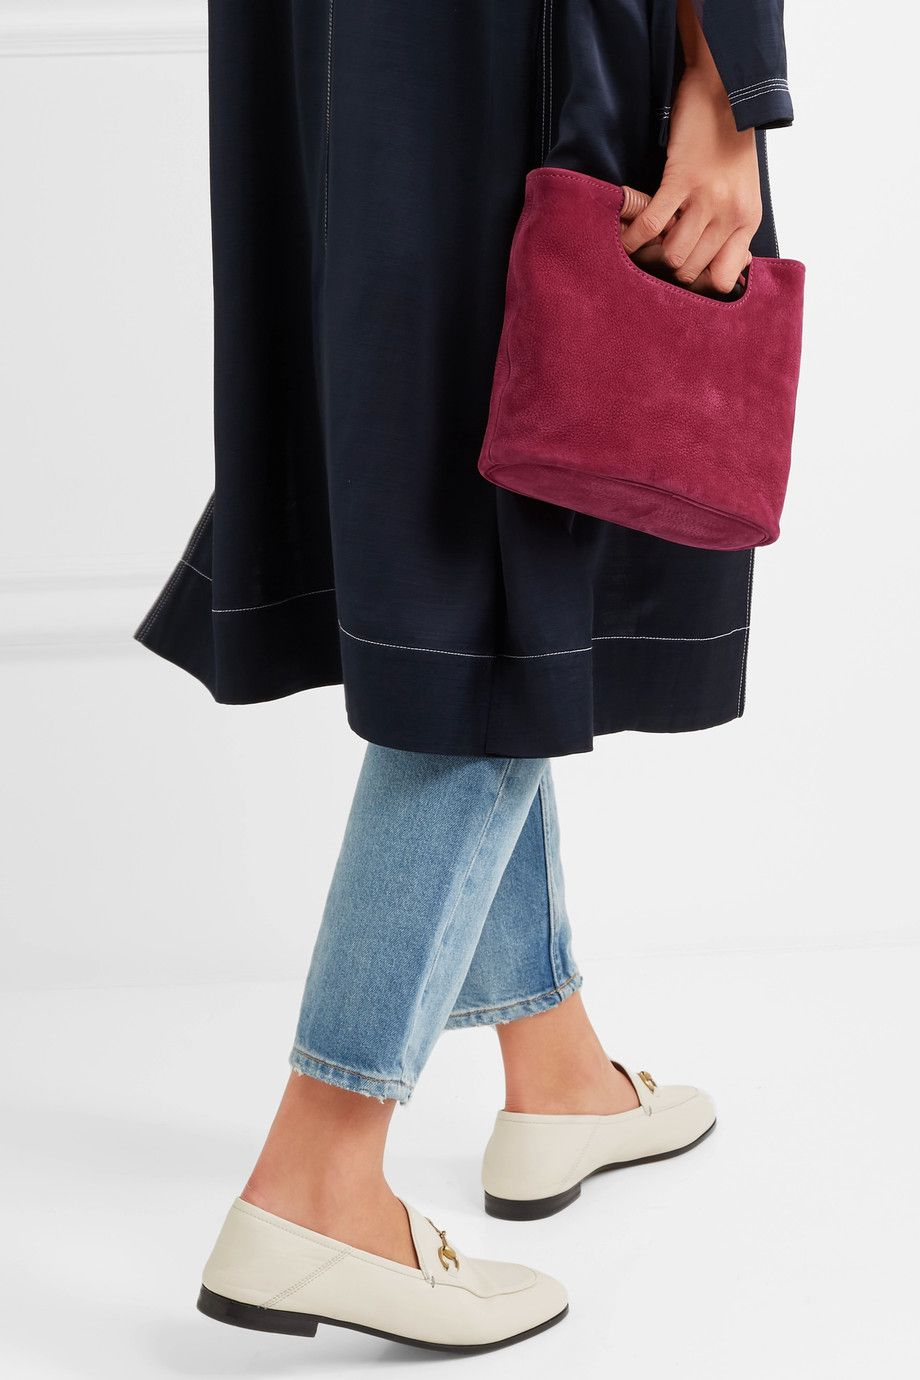 A red small tote bag